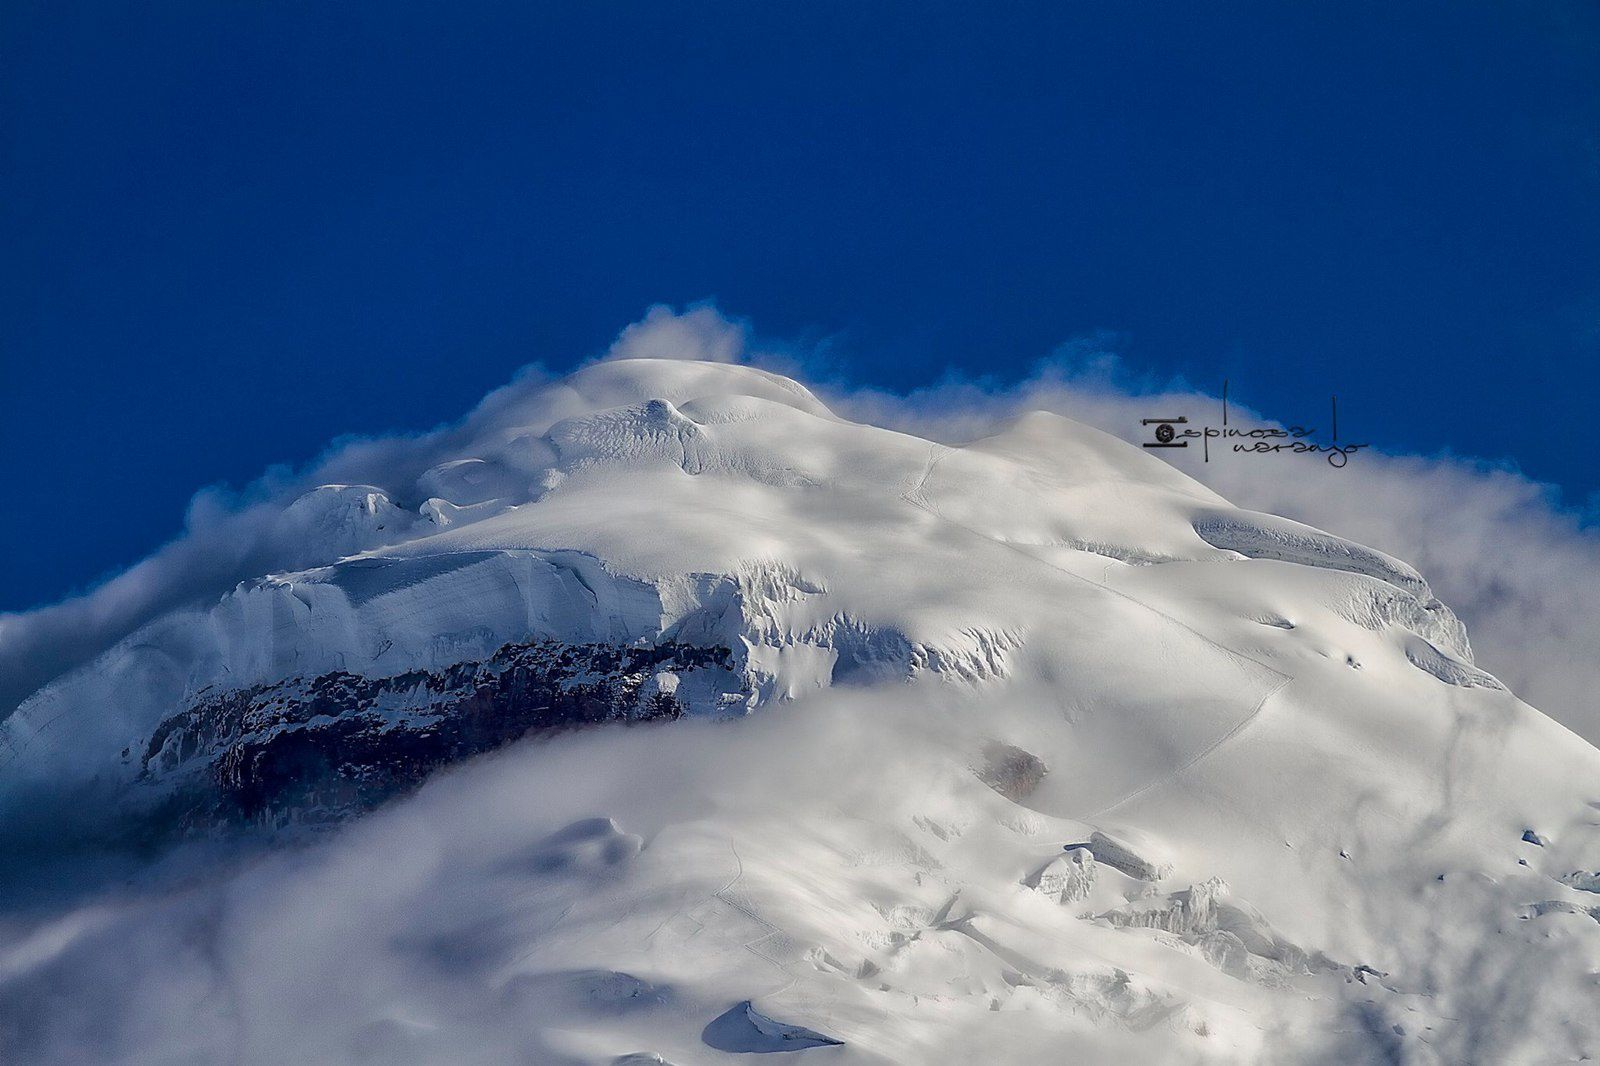 Cotopaxi - photo Jose Luis Espinosa-Naranjo, 2015.